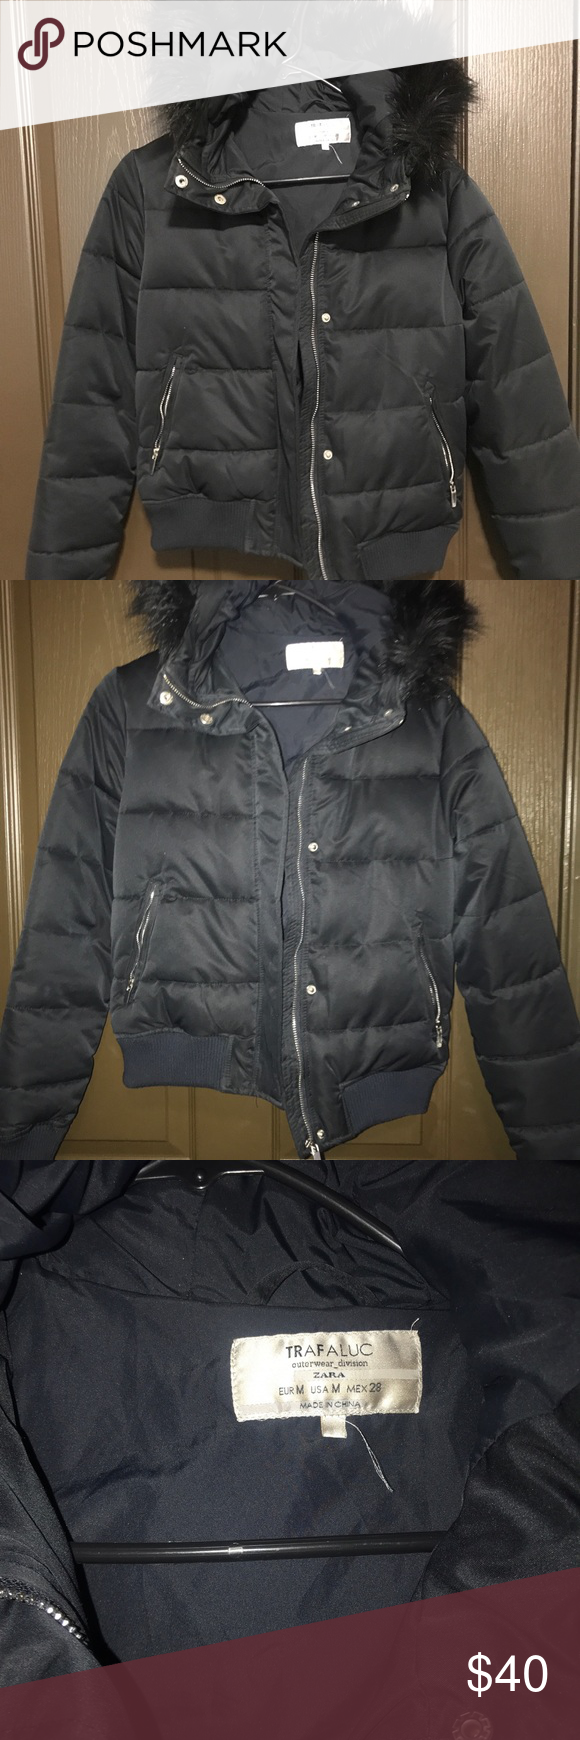 Navy Puffer Jacket Navy Blue Puffer Jacket With A Black Fur Trim On Hood It Is Very Warm And Cozy It Was Purchased Jackets Puffer Jackets Blue Puffer Jacket [ 1740 x 580 Pixel ]